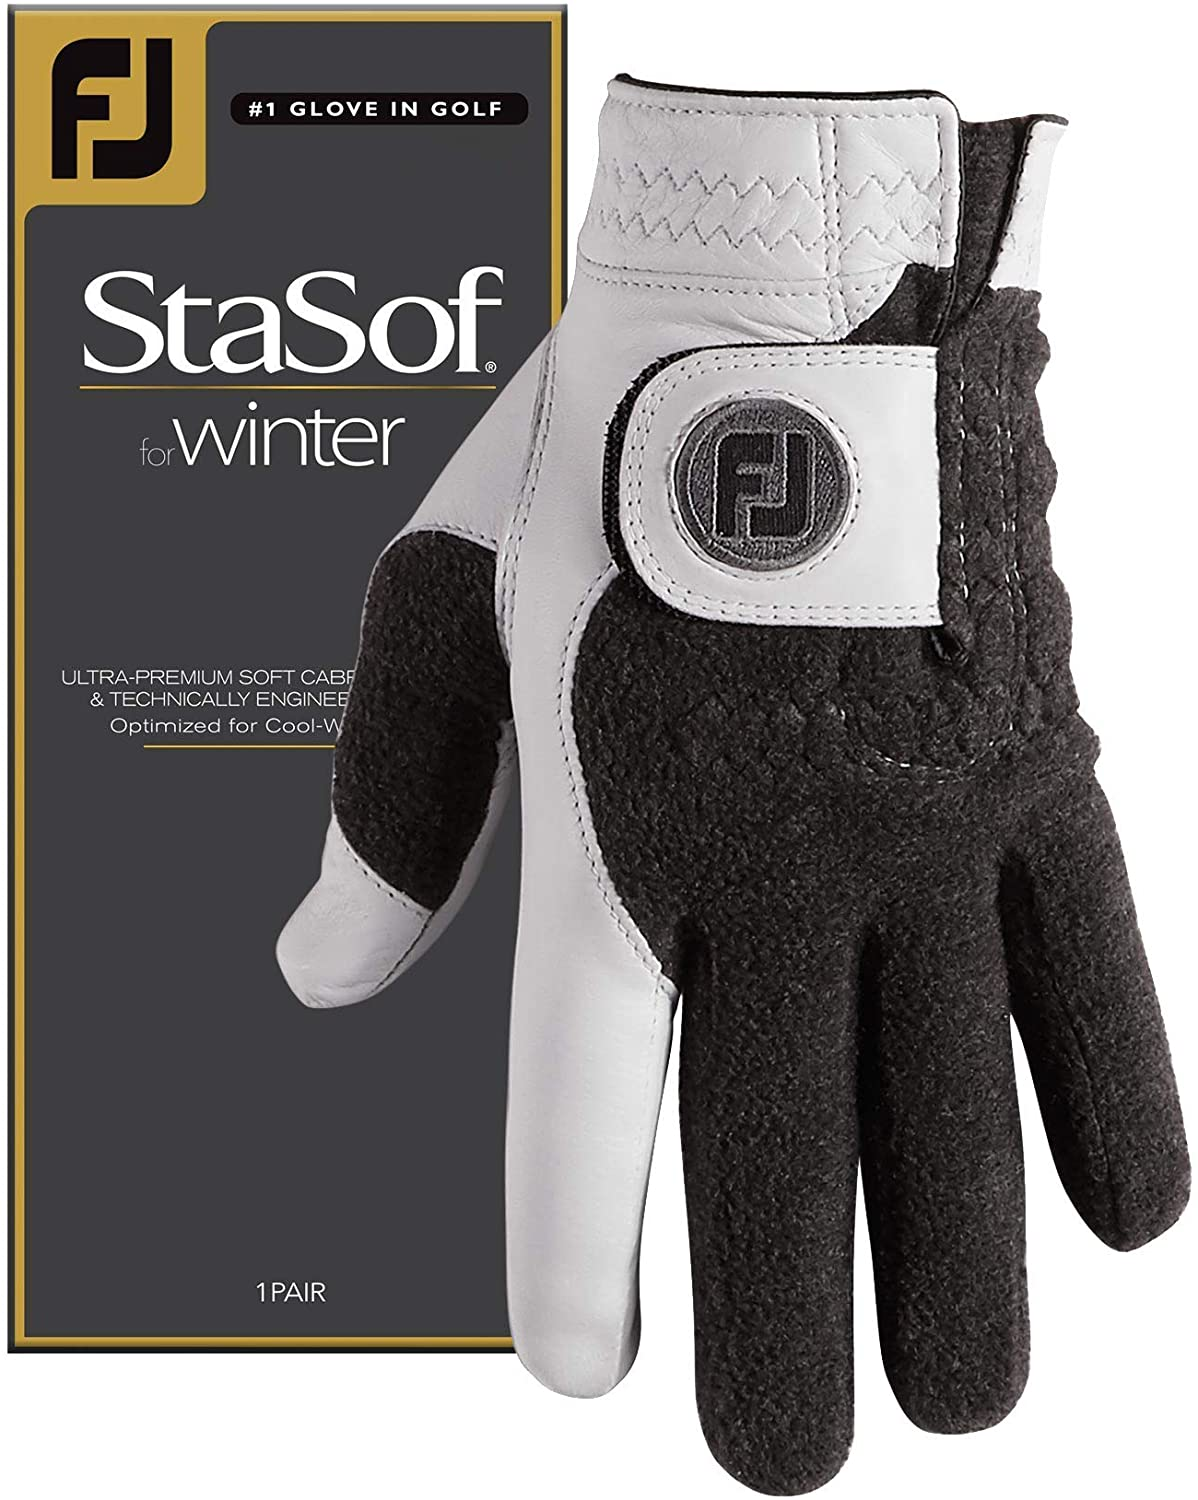 FootJoy StaSoft Winter Golf Gloves